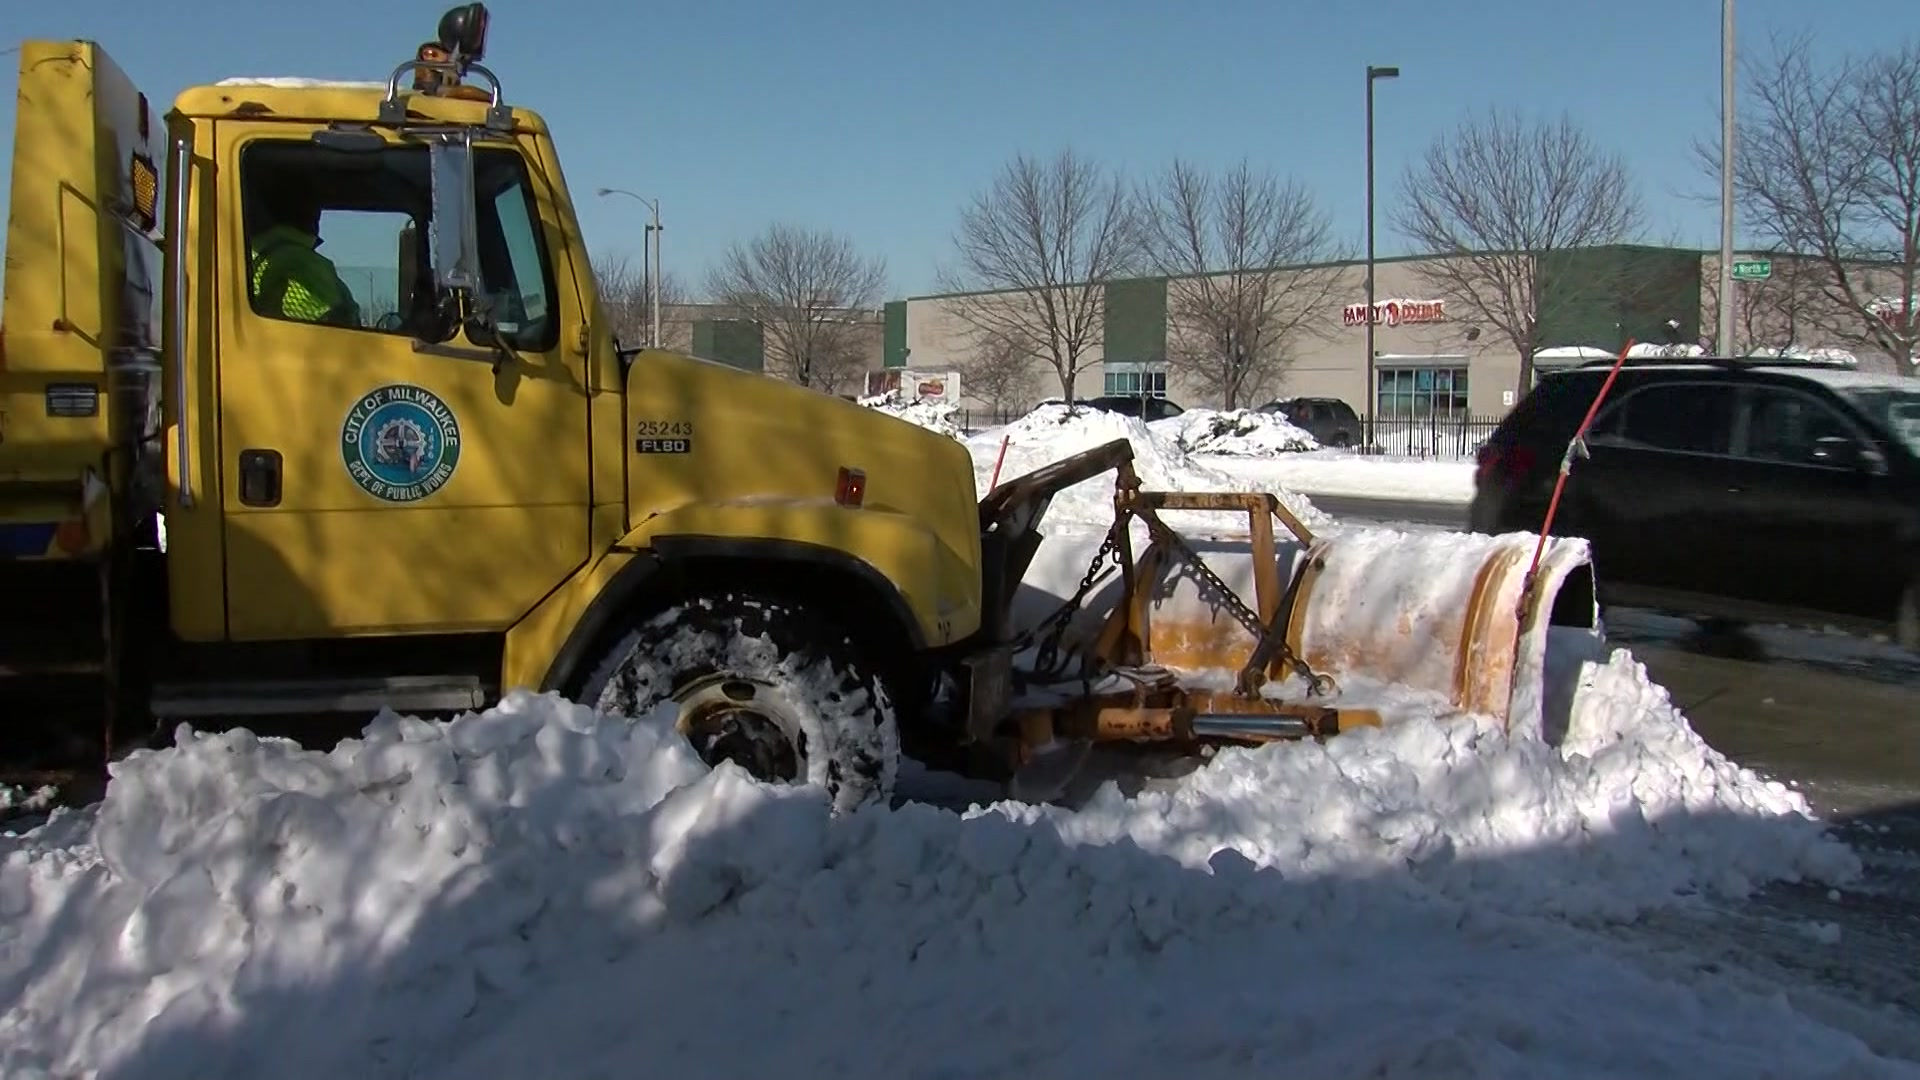 Snow emergency in effect for City of Milwaukee beginning at 10 p.m. Saturday